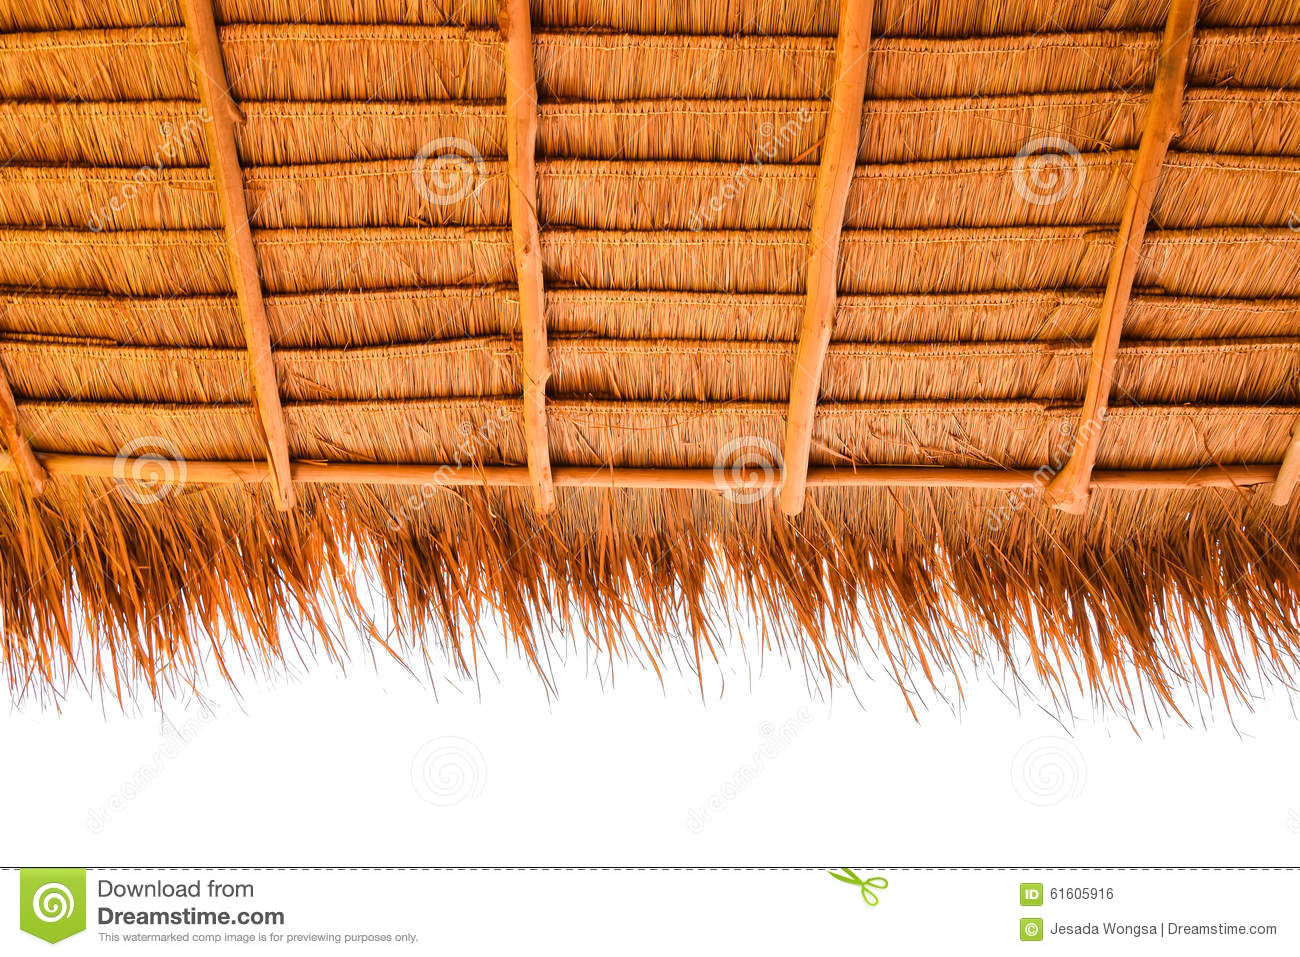 Under view of thatched roof